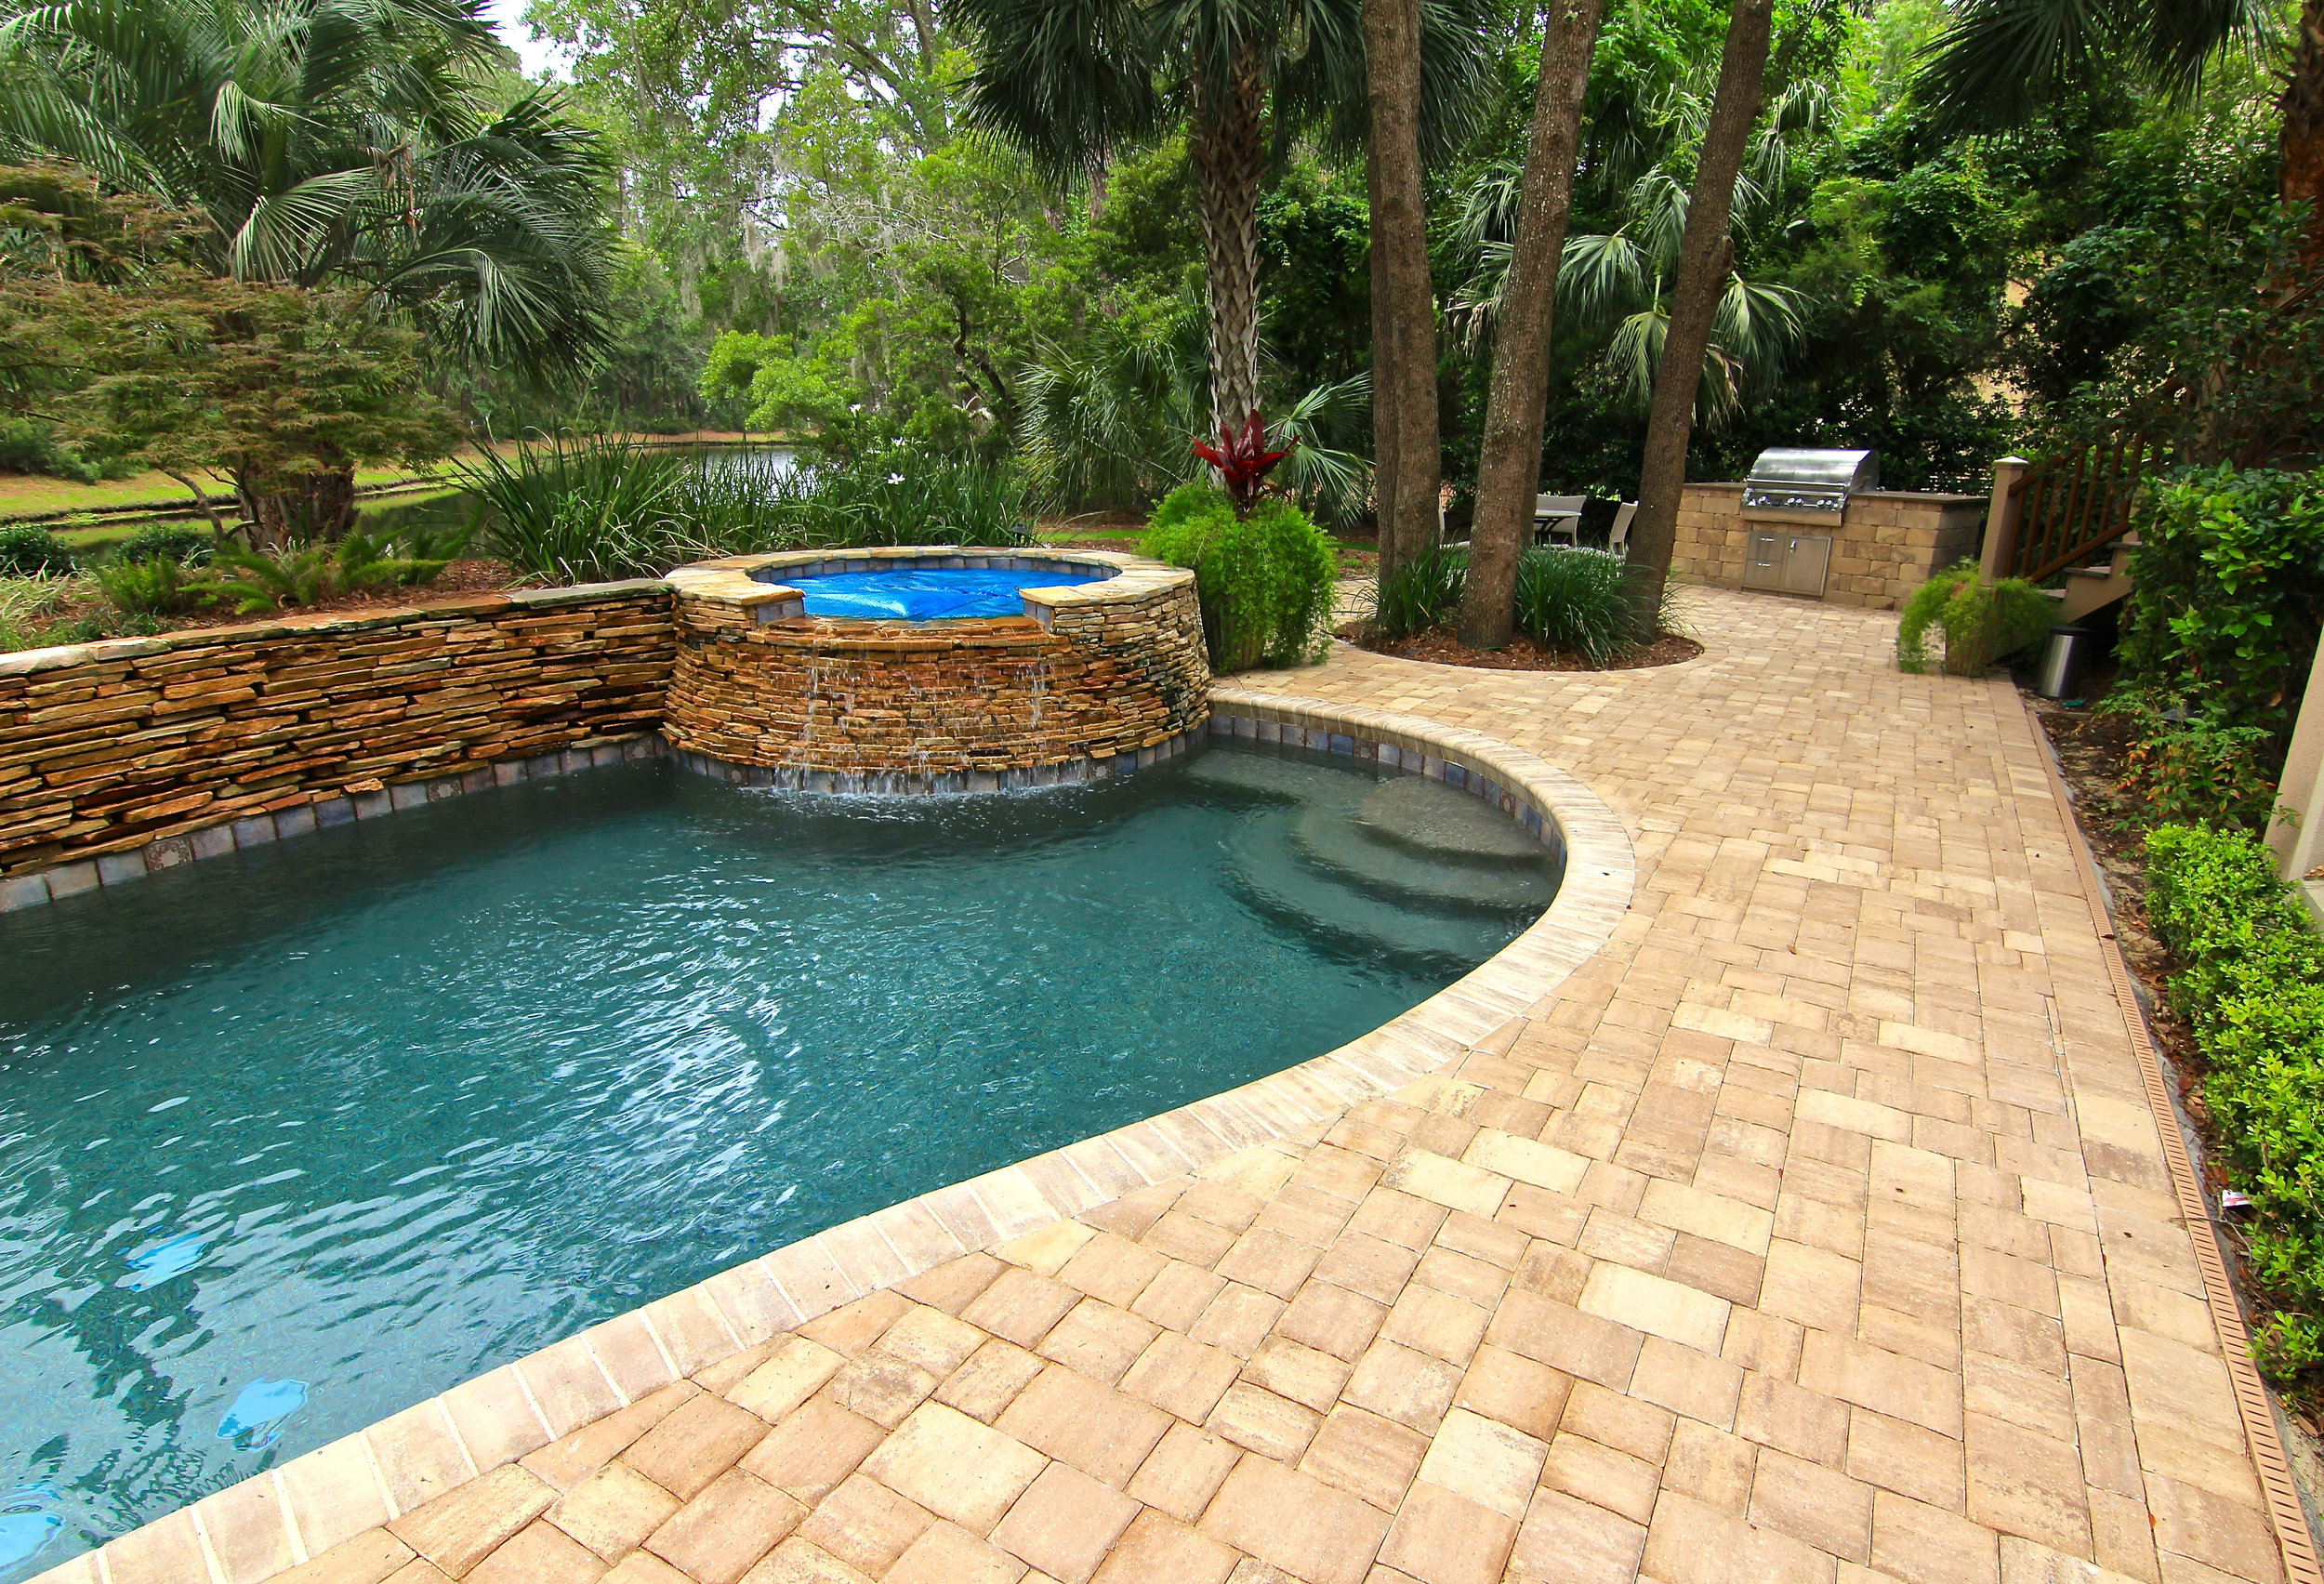 Long Cove Paver Pool Deck Remodel (after photo)